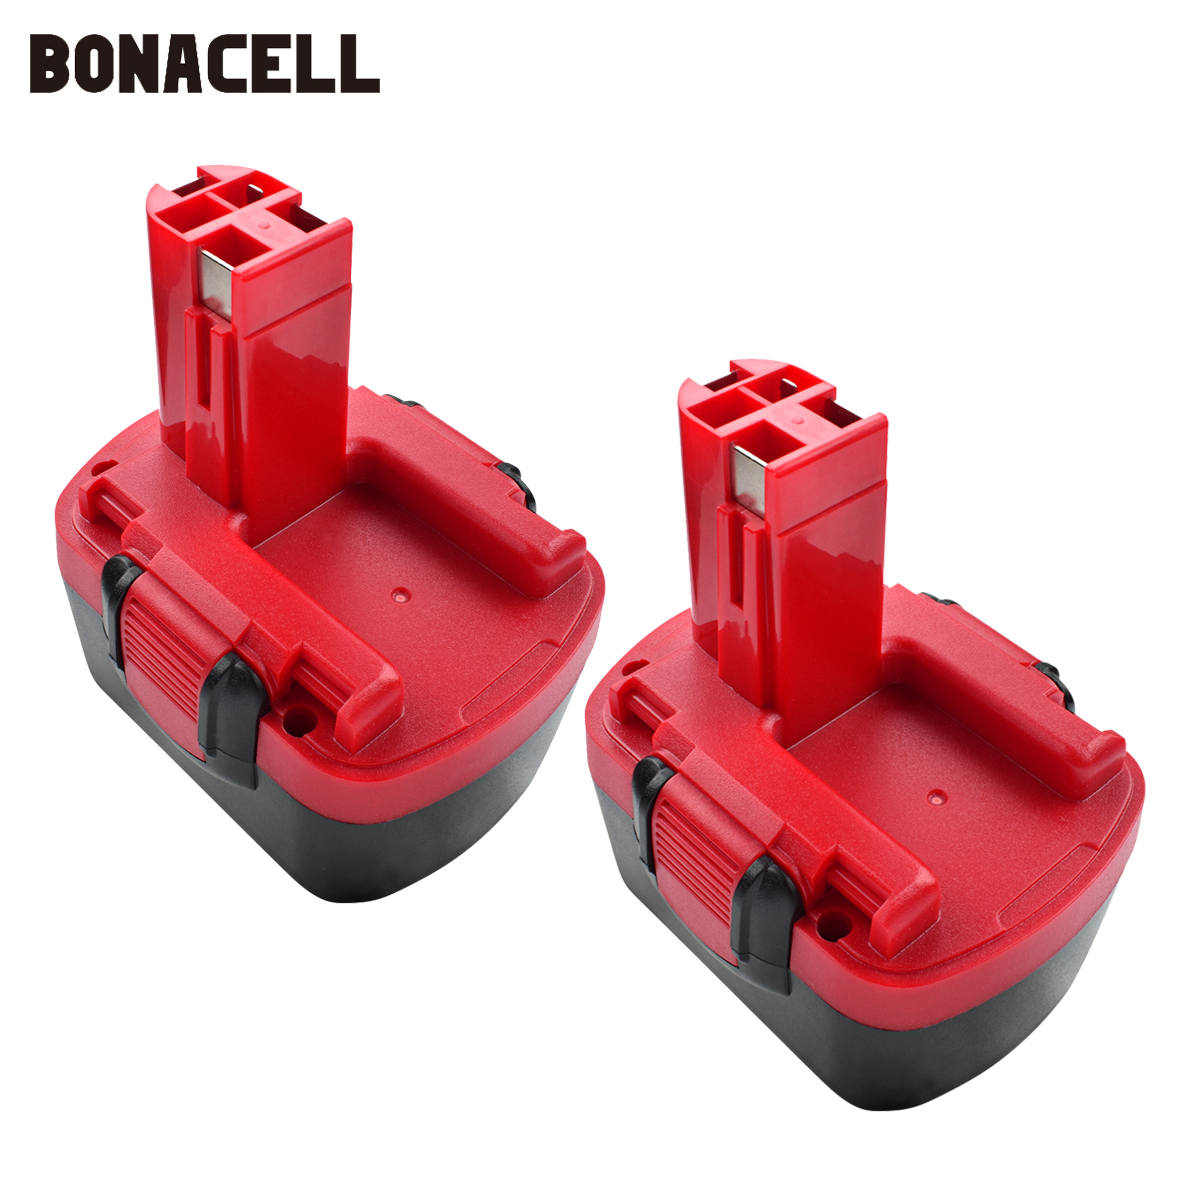 3Ah, 18V 2607335713 Power ToolCordless Battery for Bosch